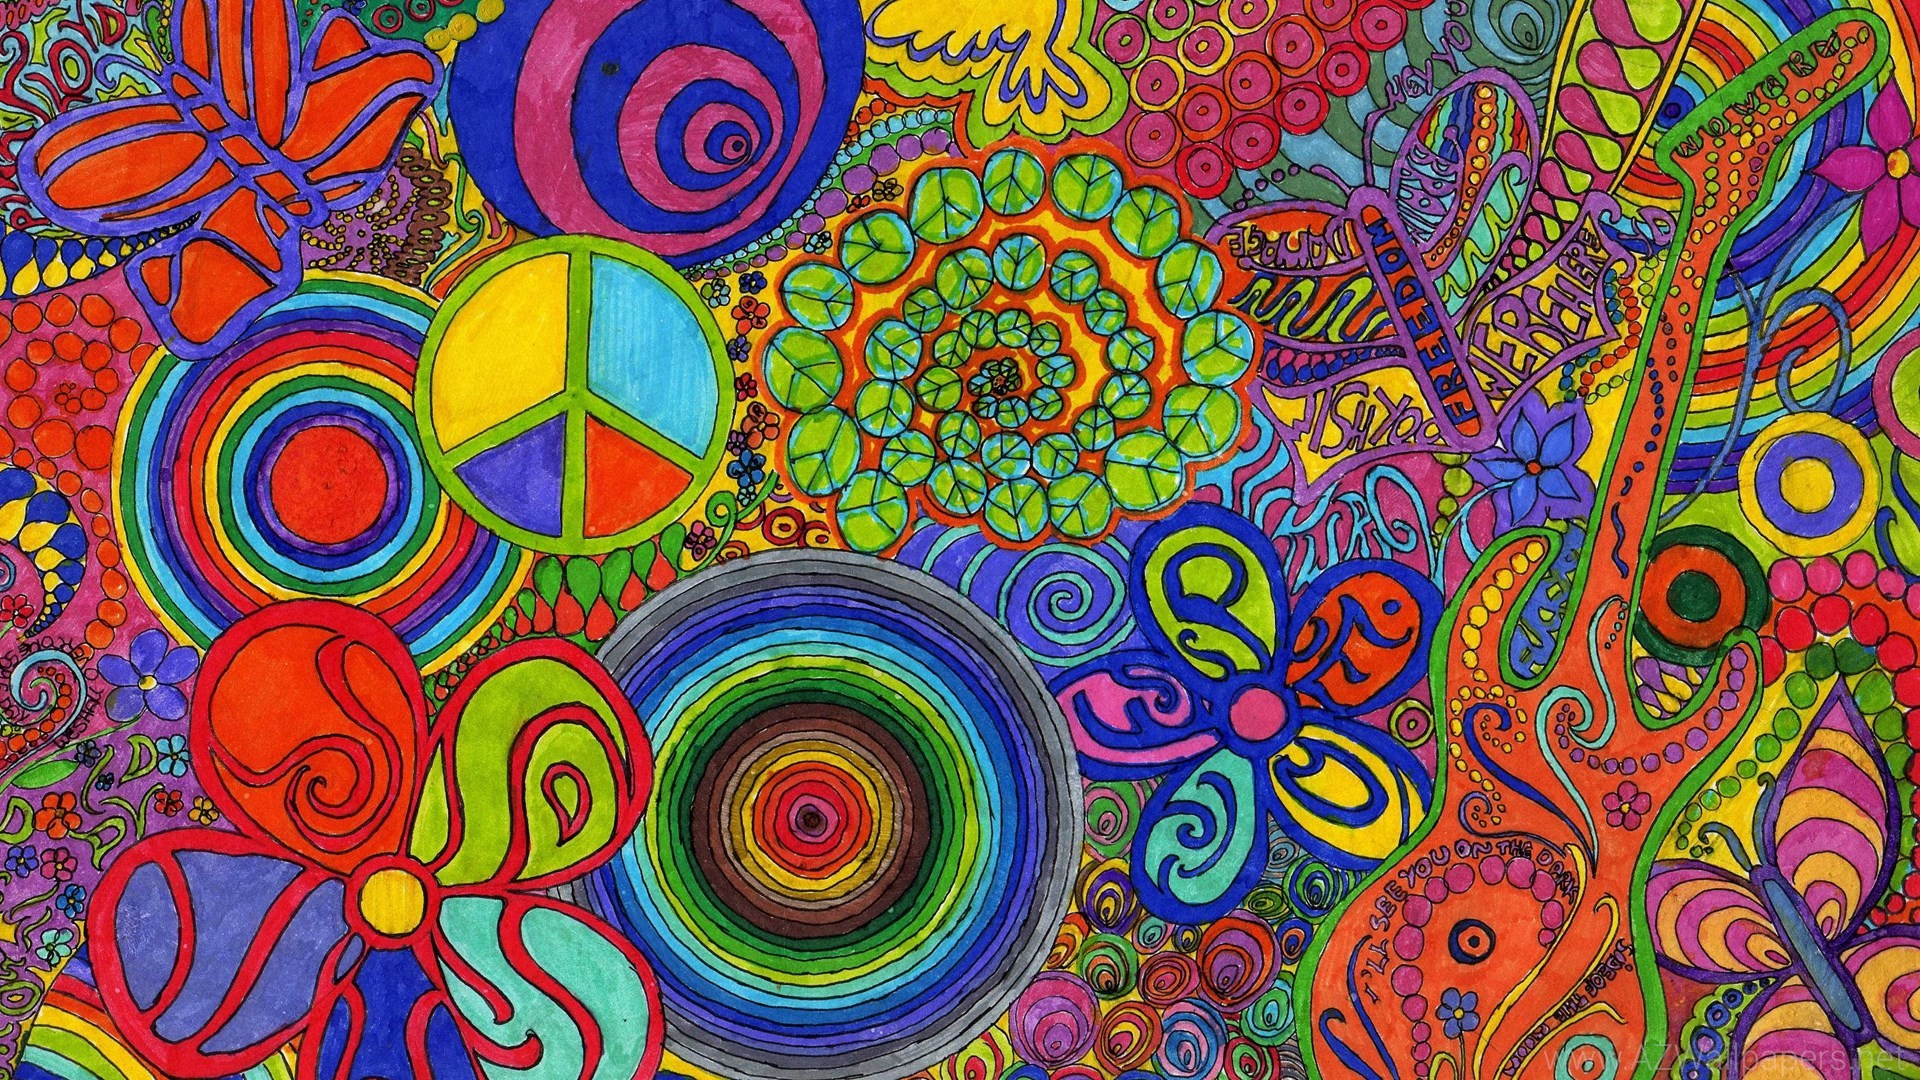 1920x1080 Agreeable Hippie Wallpaper Trippy Psychedelic The Sky HD Wallpaper .